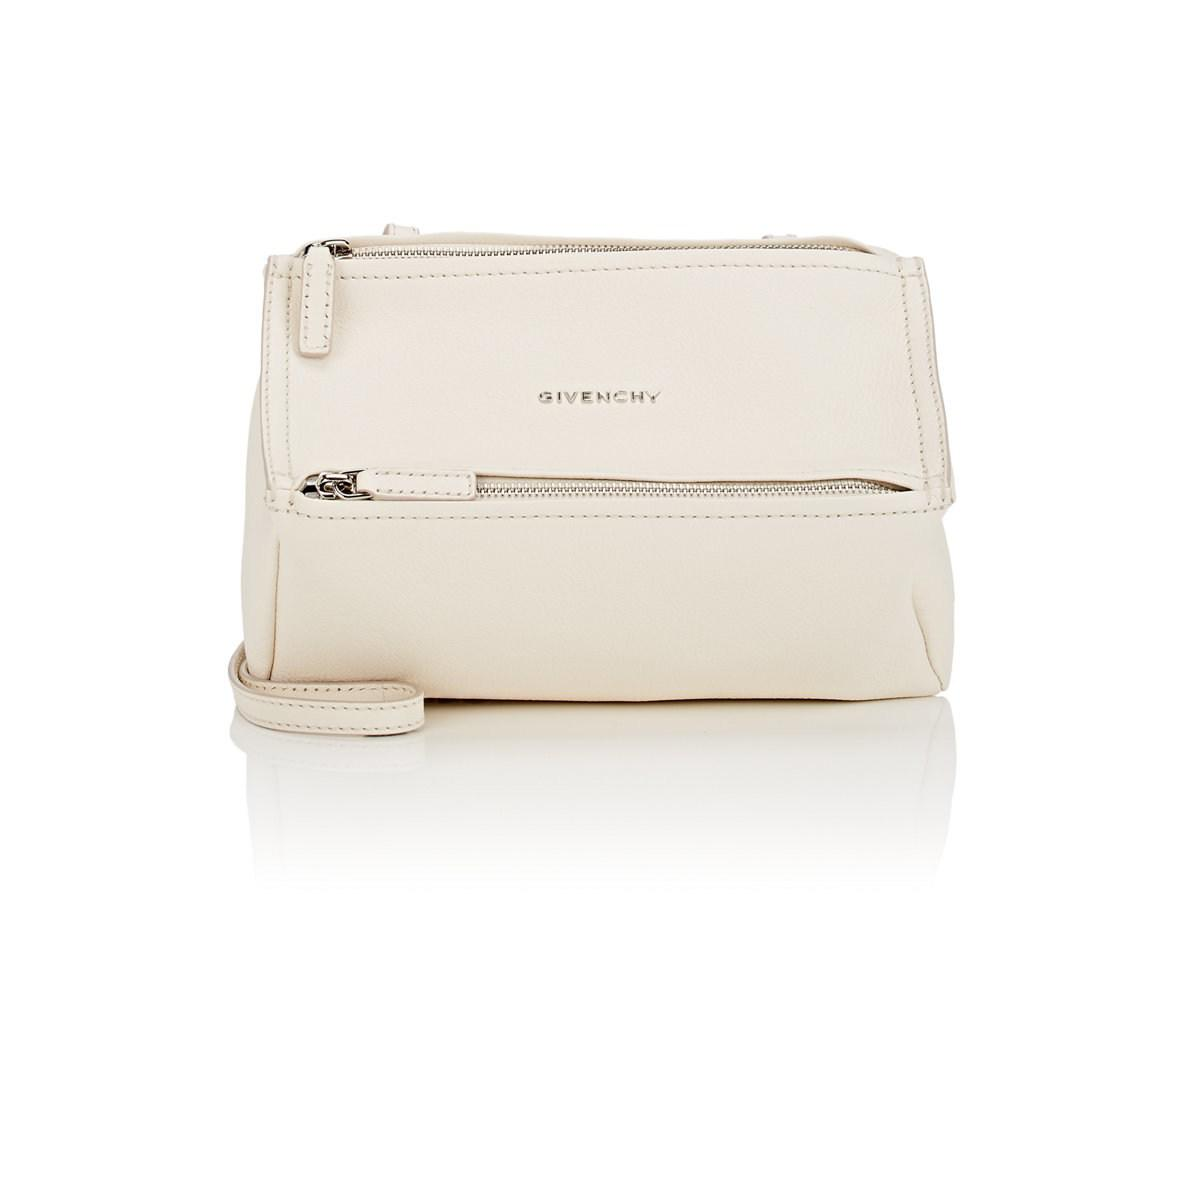 Lyst - Givenchy Pandora Mini Leather Messenger Bag in Natural f2531f8d3b39a